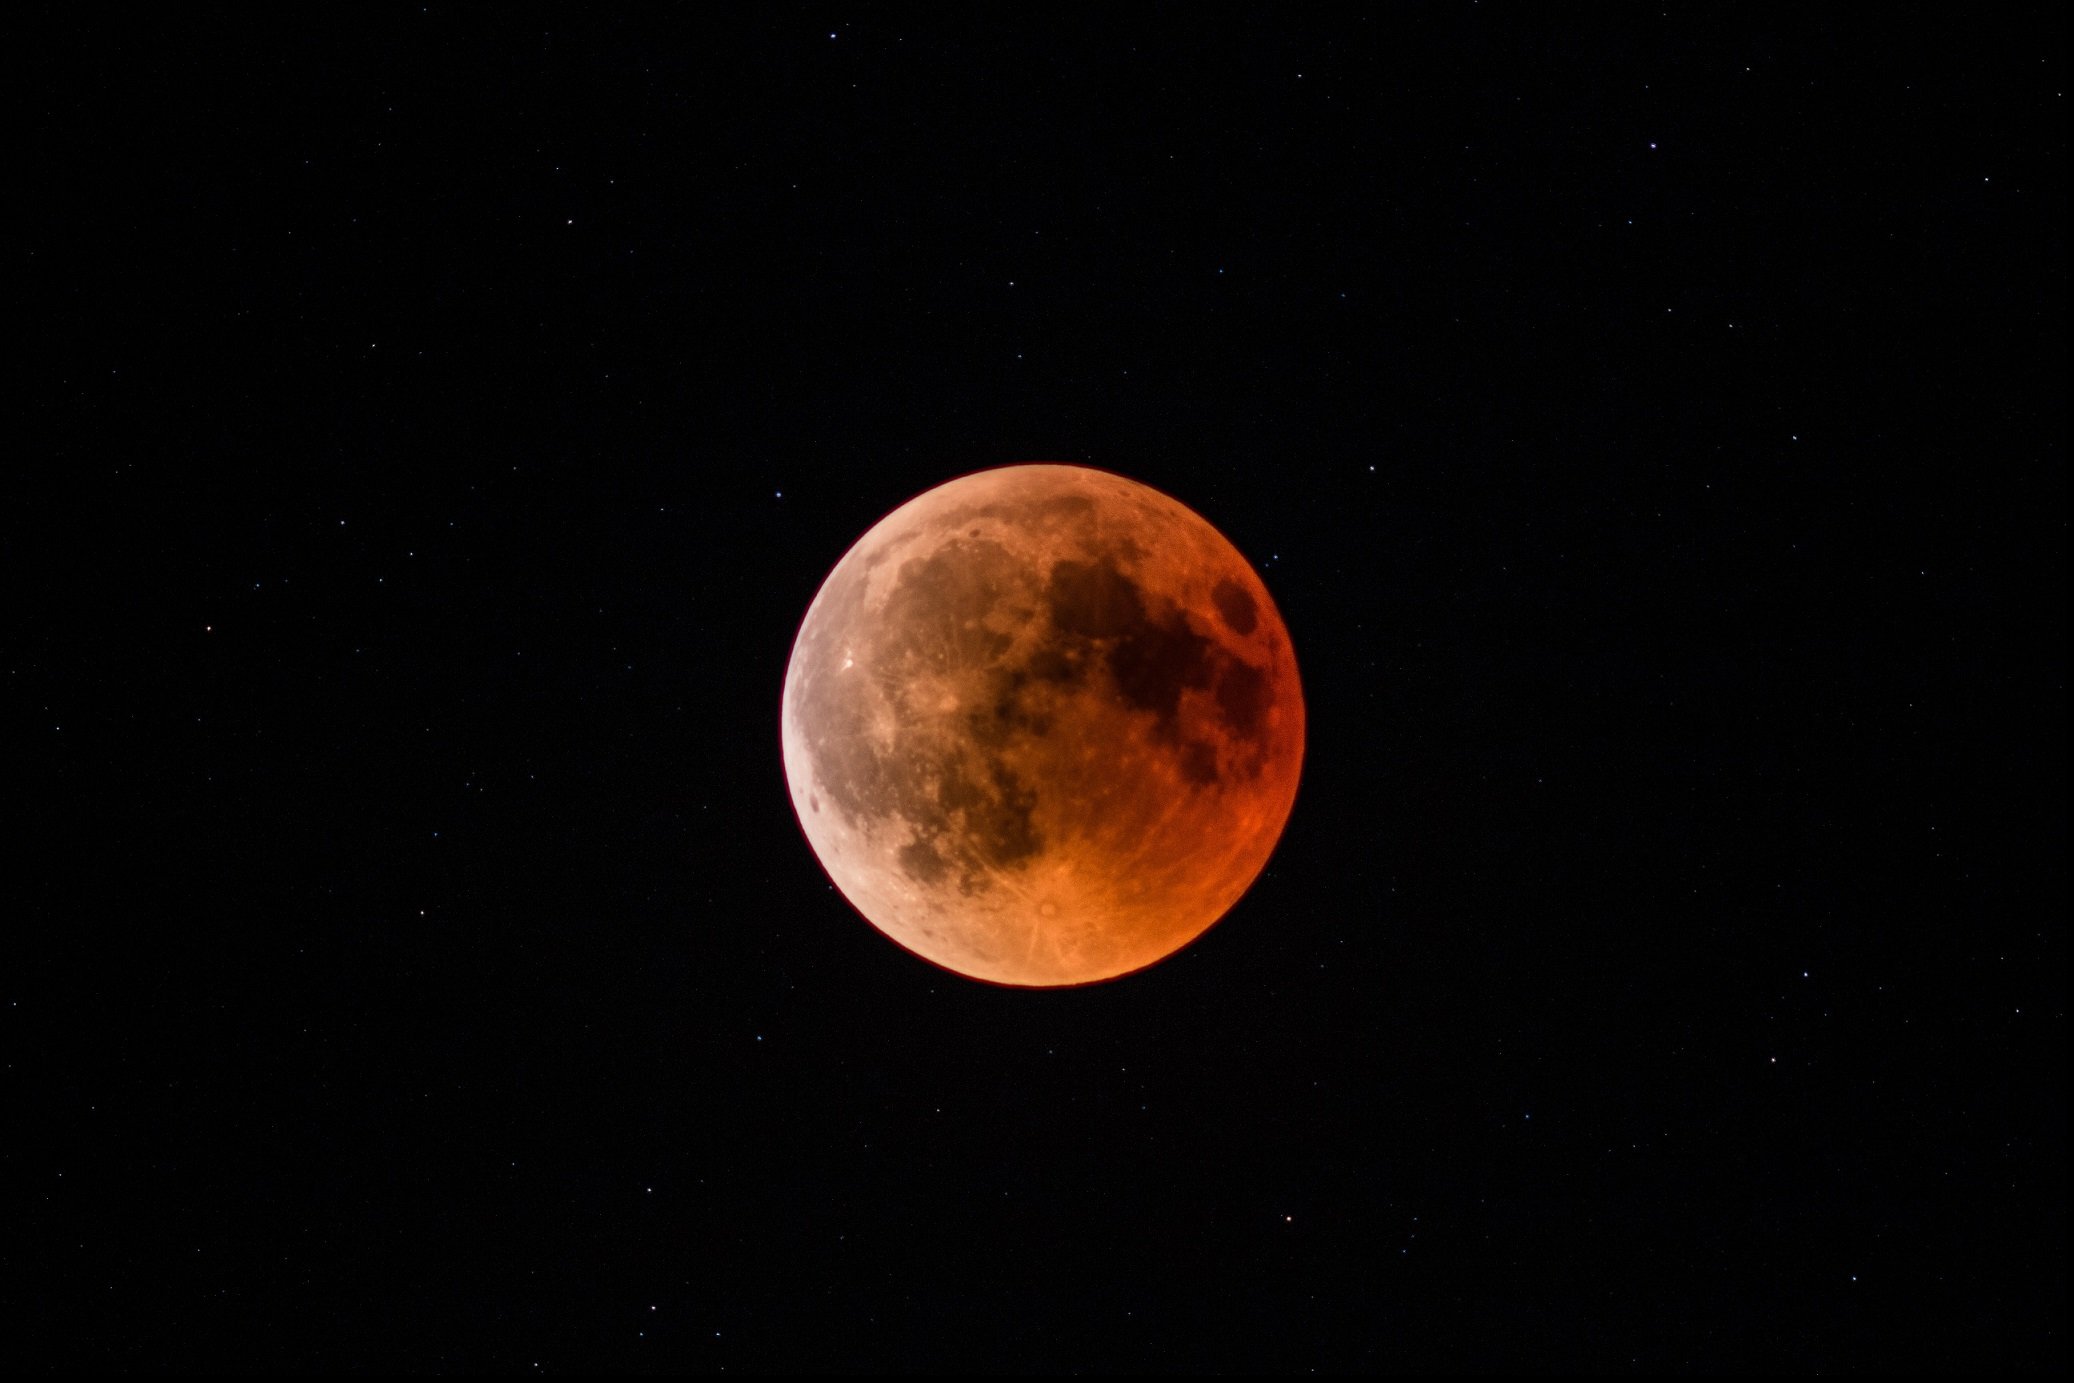 A red moon for SafeMoon's troubles